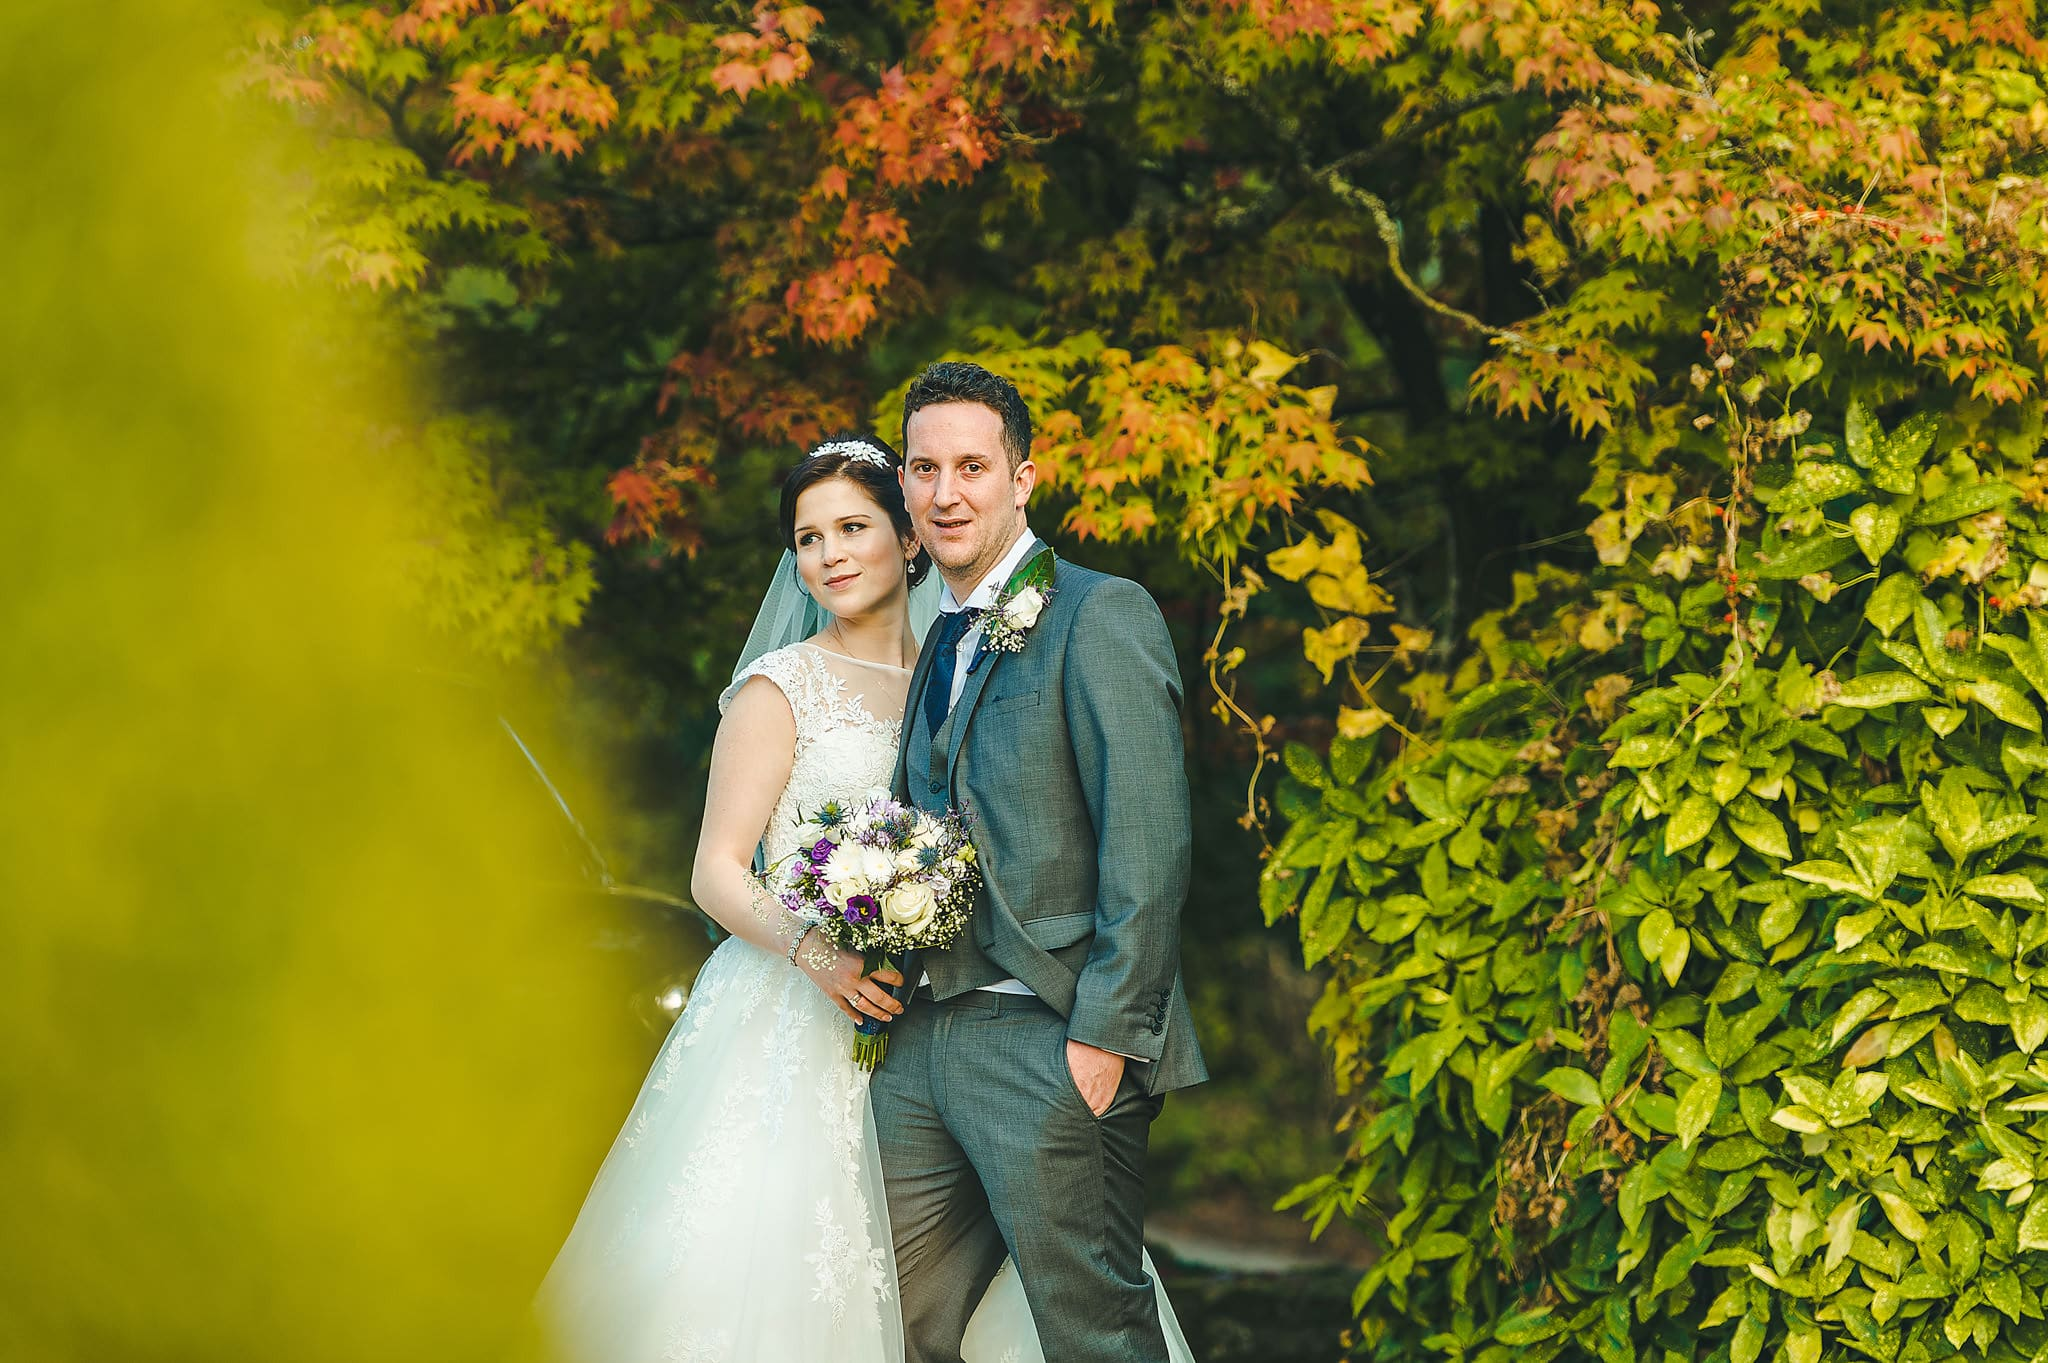 Midlands wedding photography - 2015 Review 34